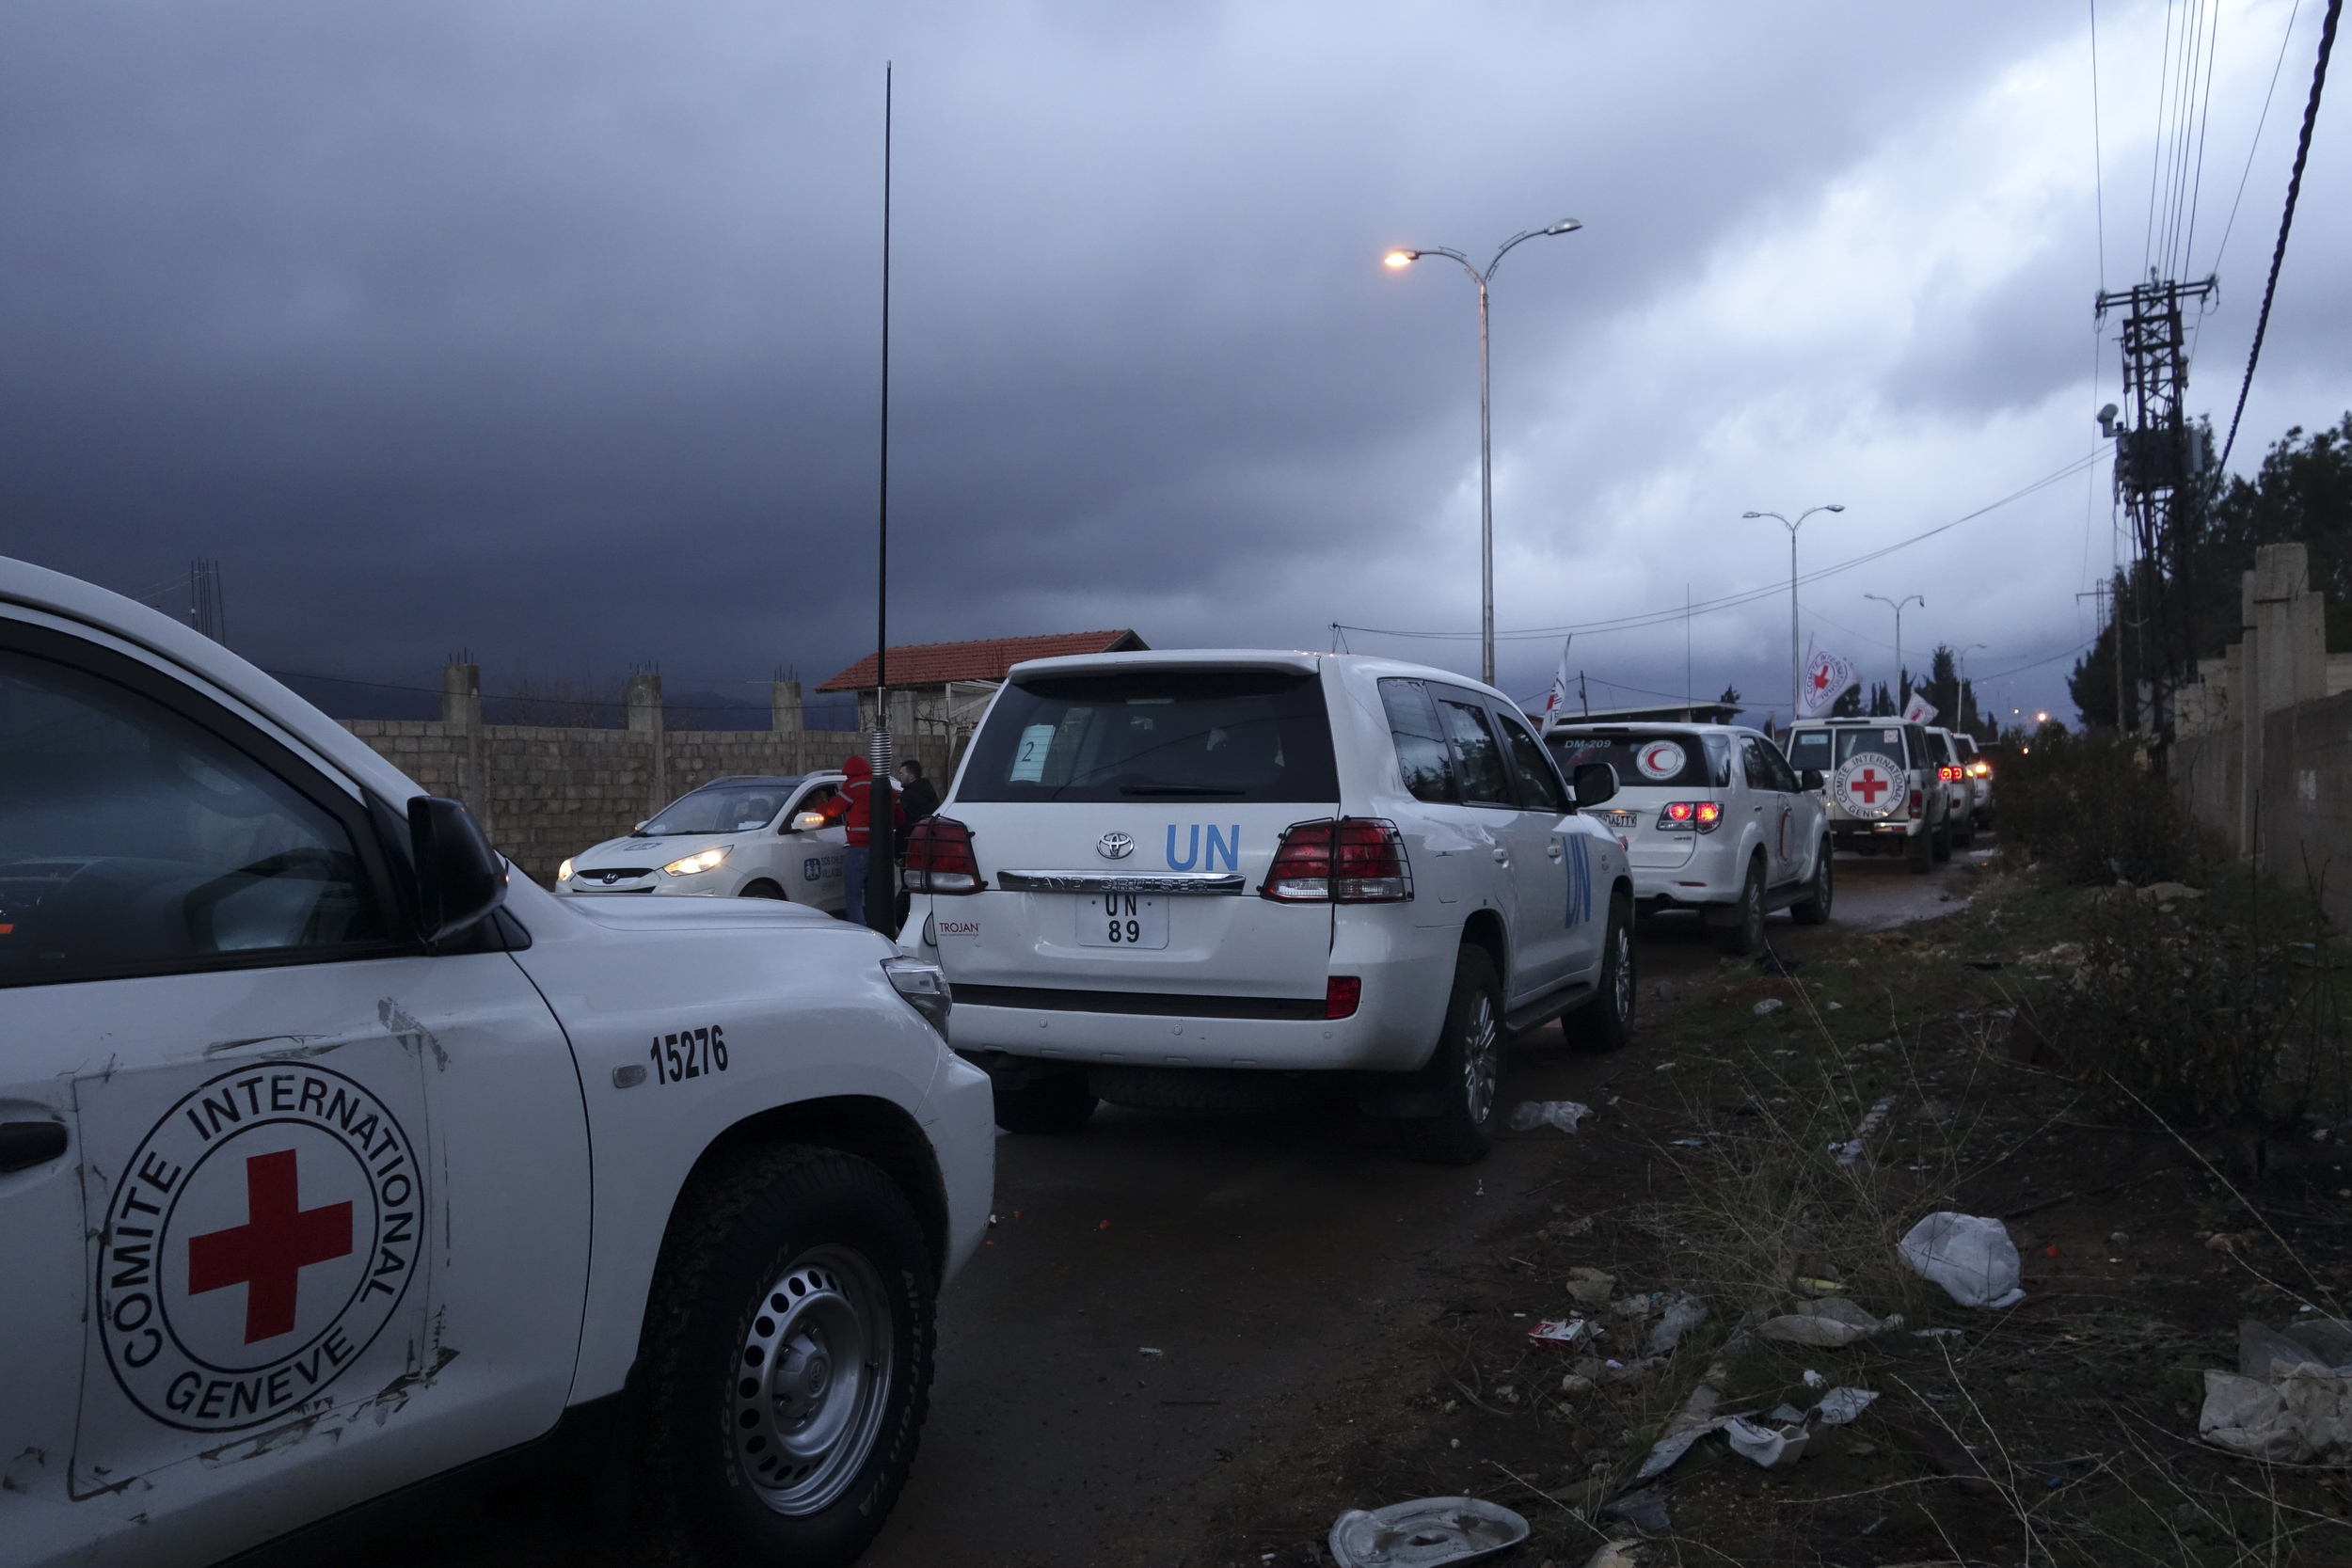 Rural Damascus, Zabadani way. A joint ICRC, UN, Syrian Arab Red Crescent aid convoy en route to Madaya. © ICRC/ somar Rezk.